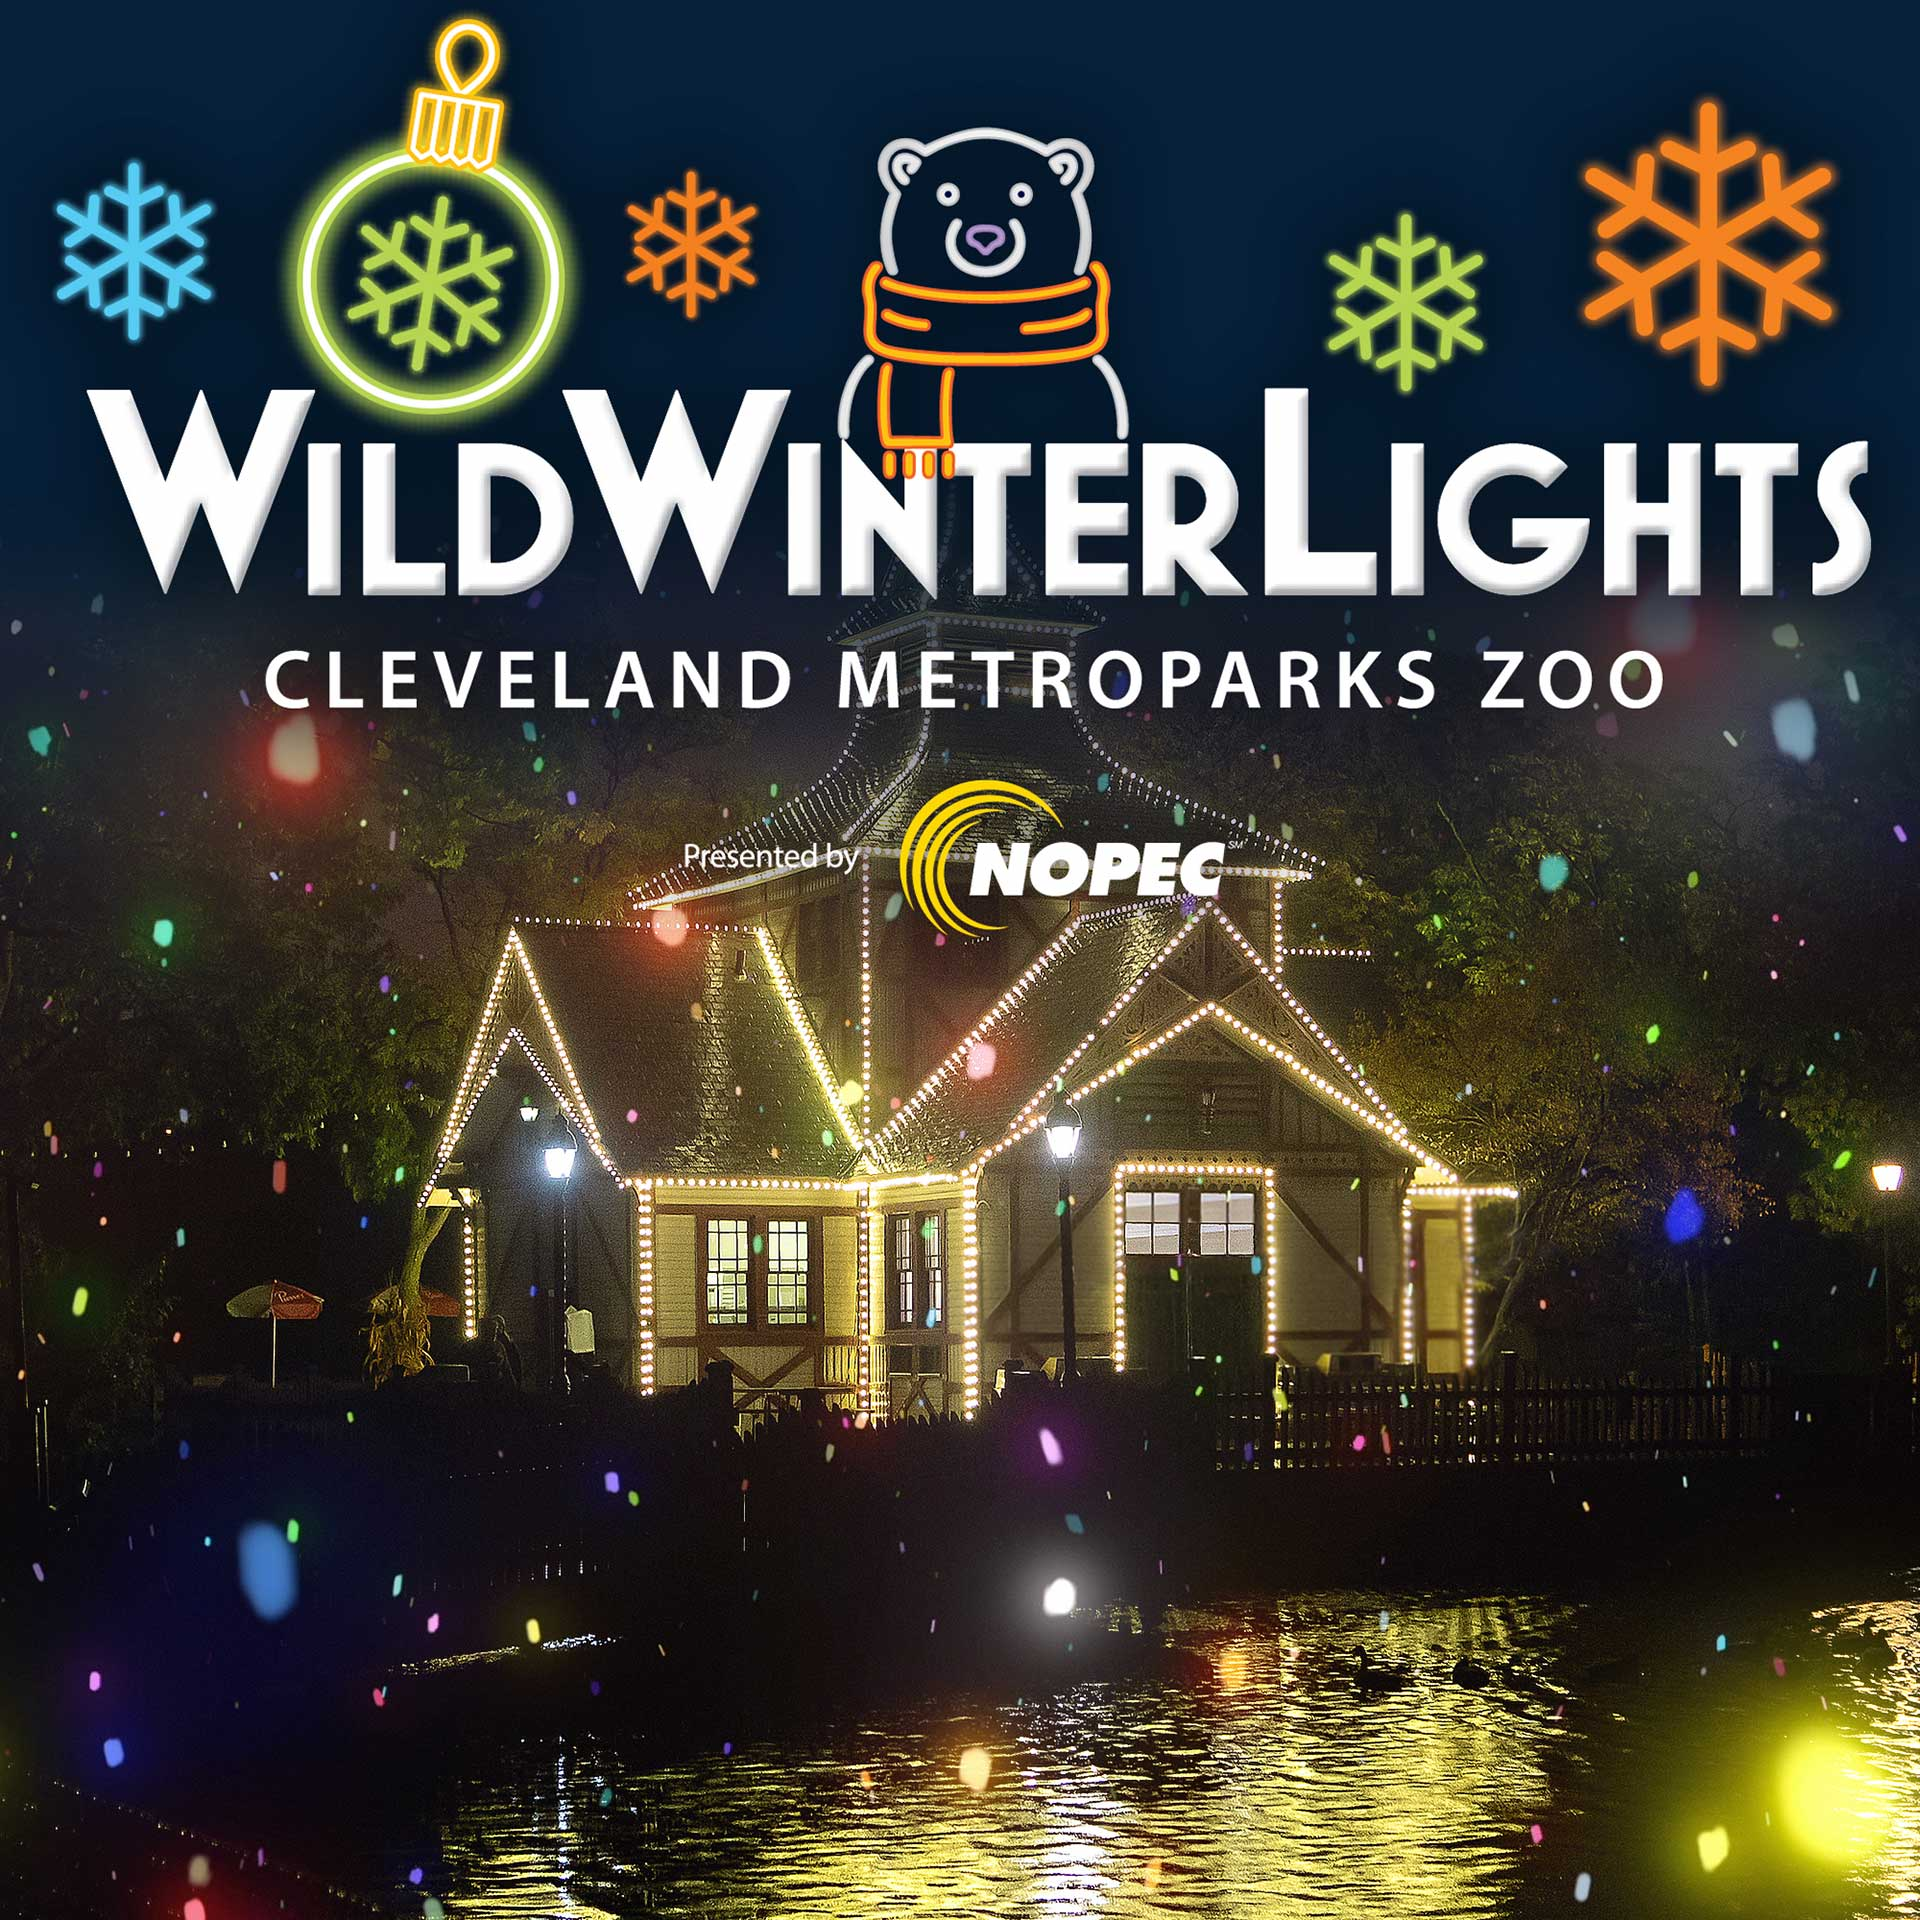 Zoo Lights 2020 Cleveland Christmas Cleveland Metroparks Zoo Announces Wild Winter Lights | Cleveland